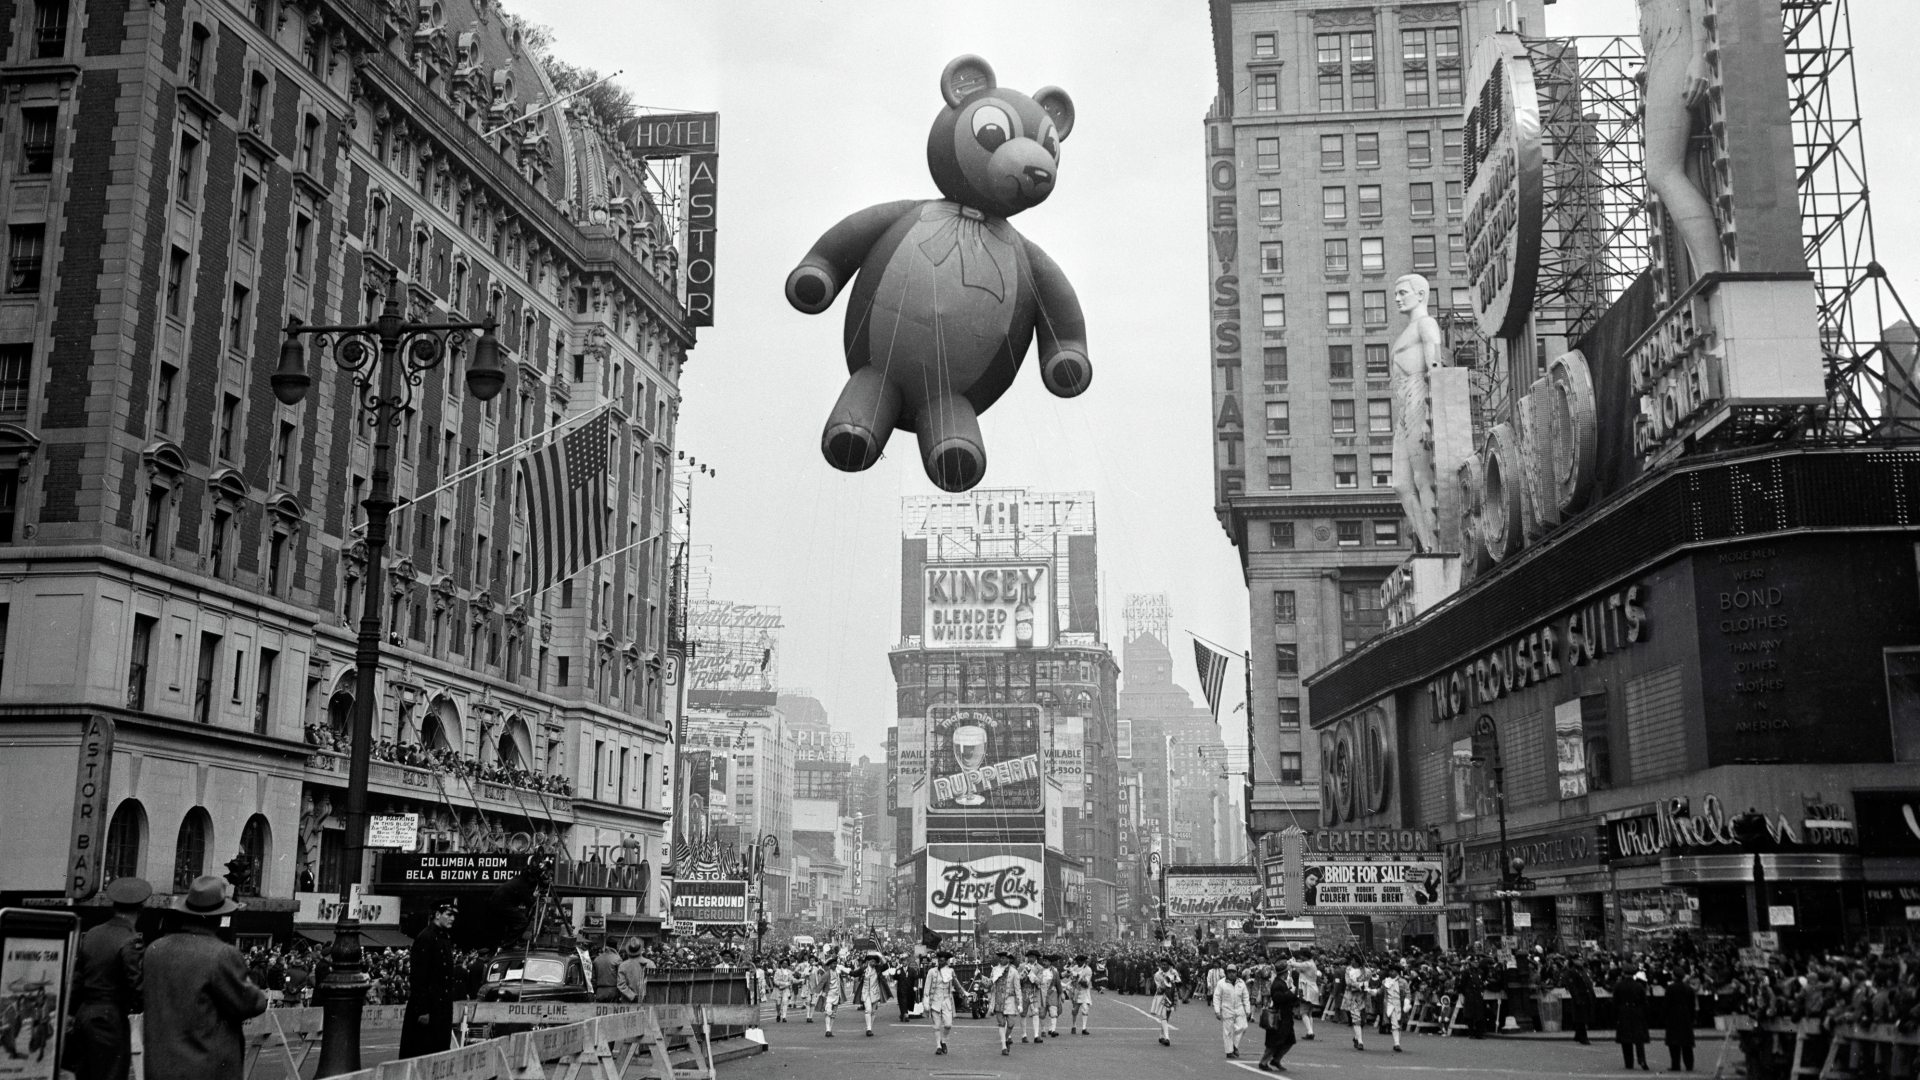 Macy's Thanksgiving Day Parade, 1959. (Credit: Bettmann Archive/Getty Images)